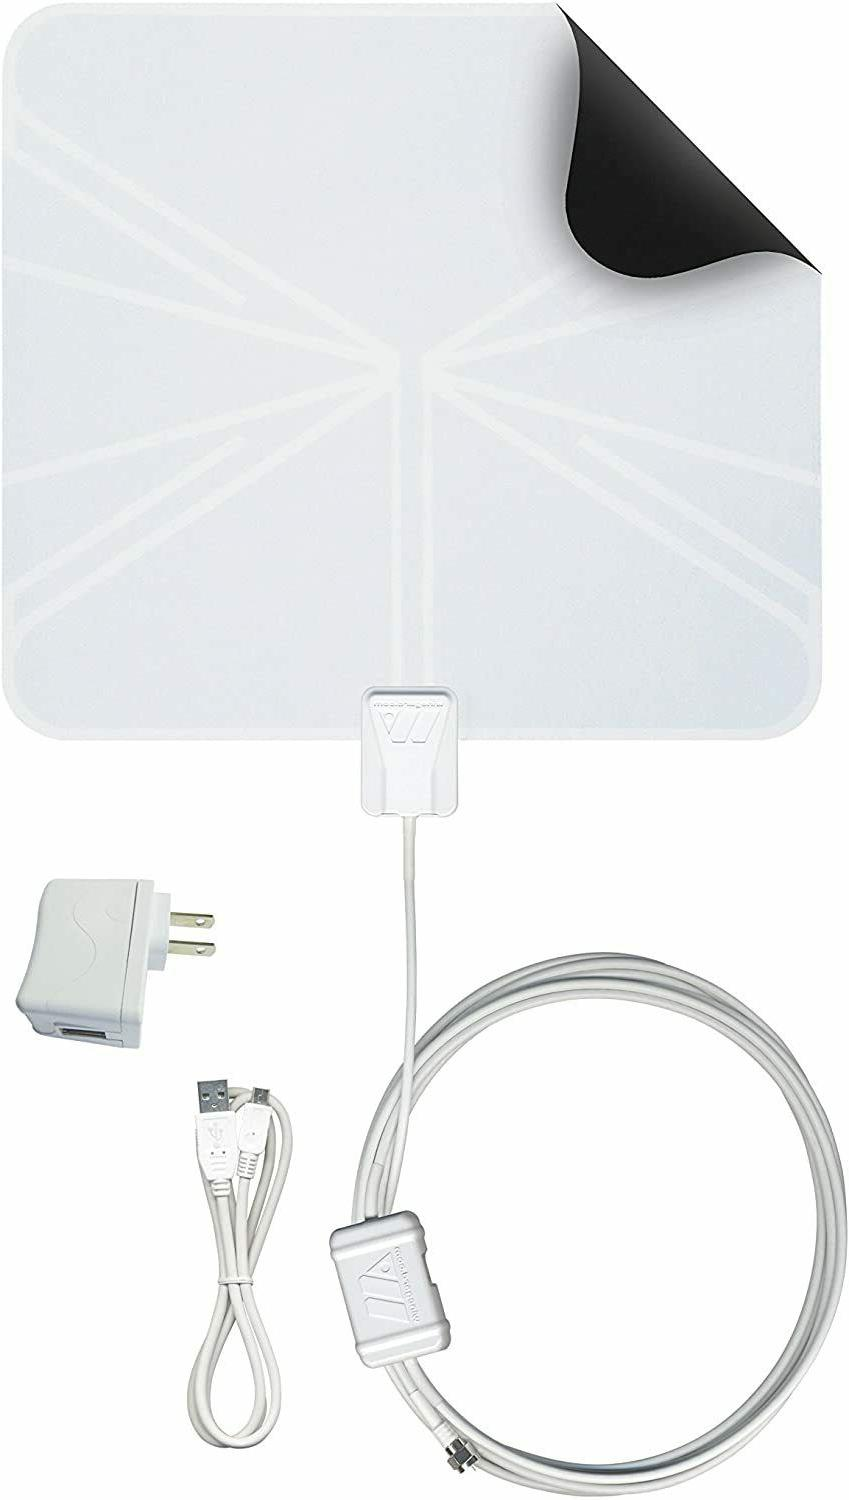 FlatWave Amped FL5500A Amplified Antenna NEW